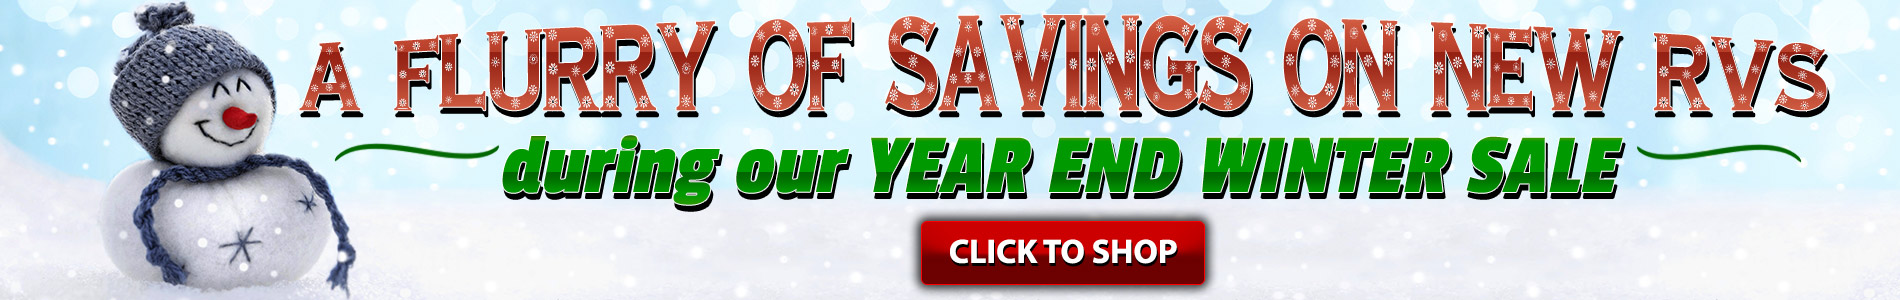 flurry of savings